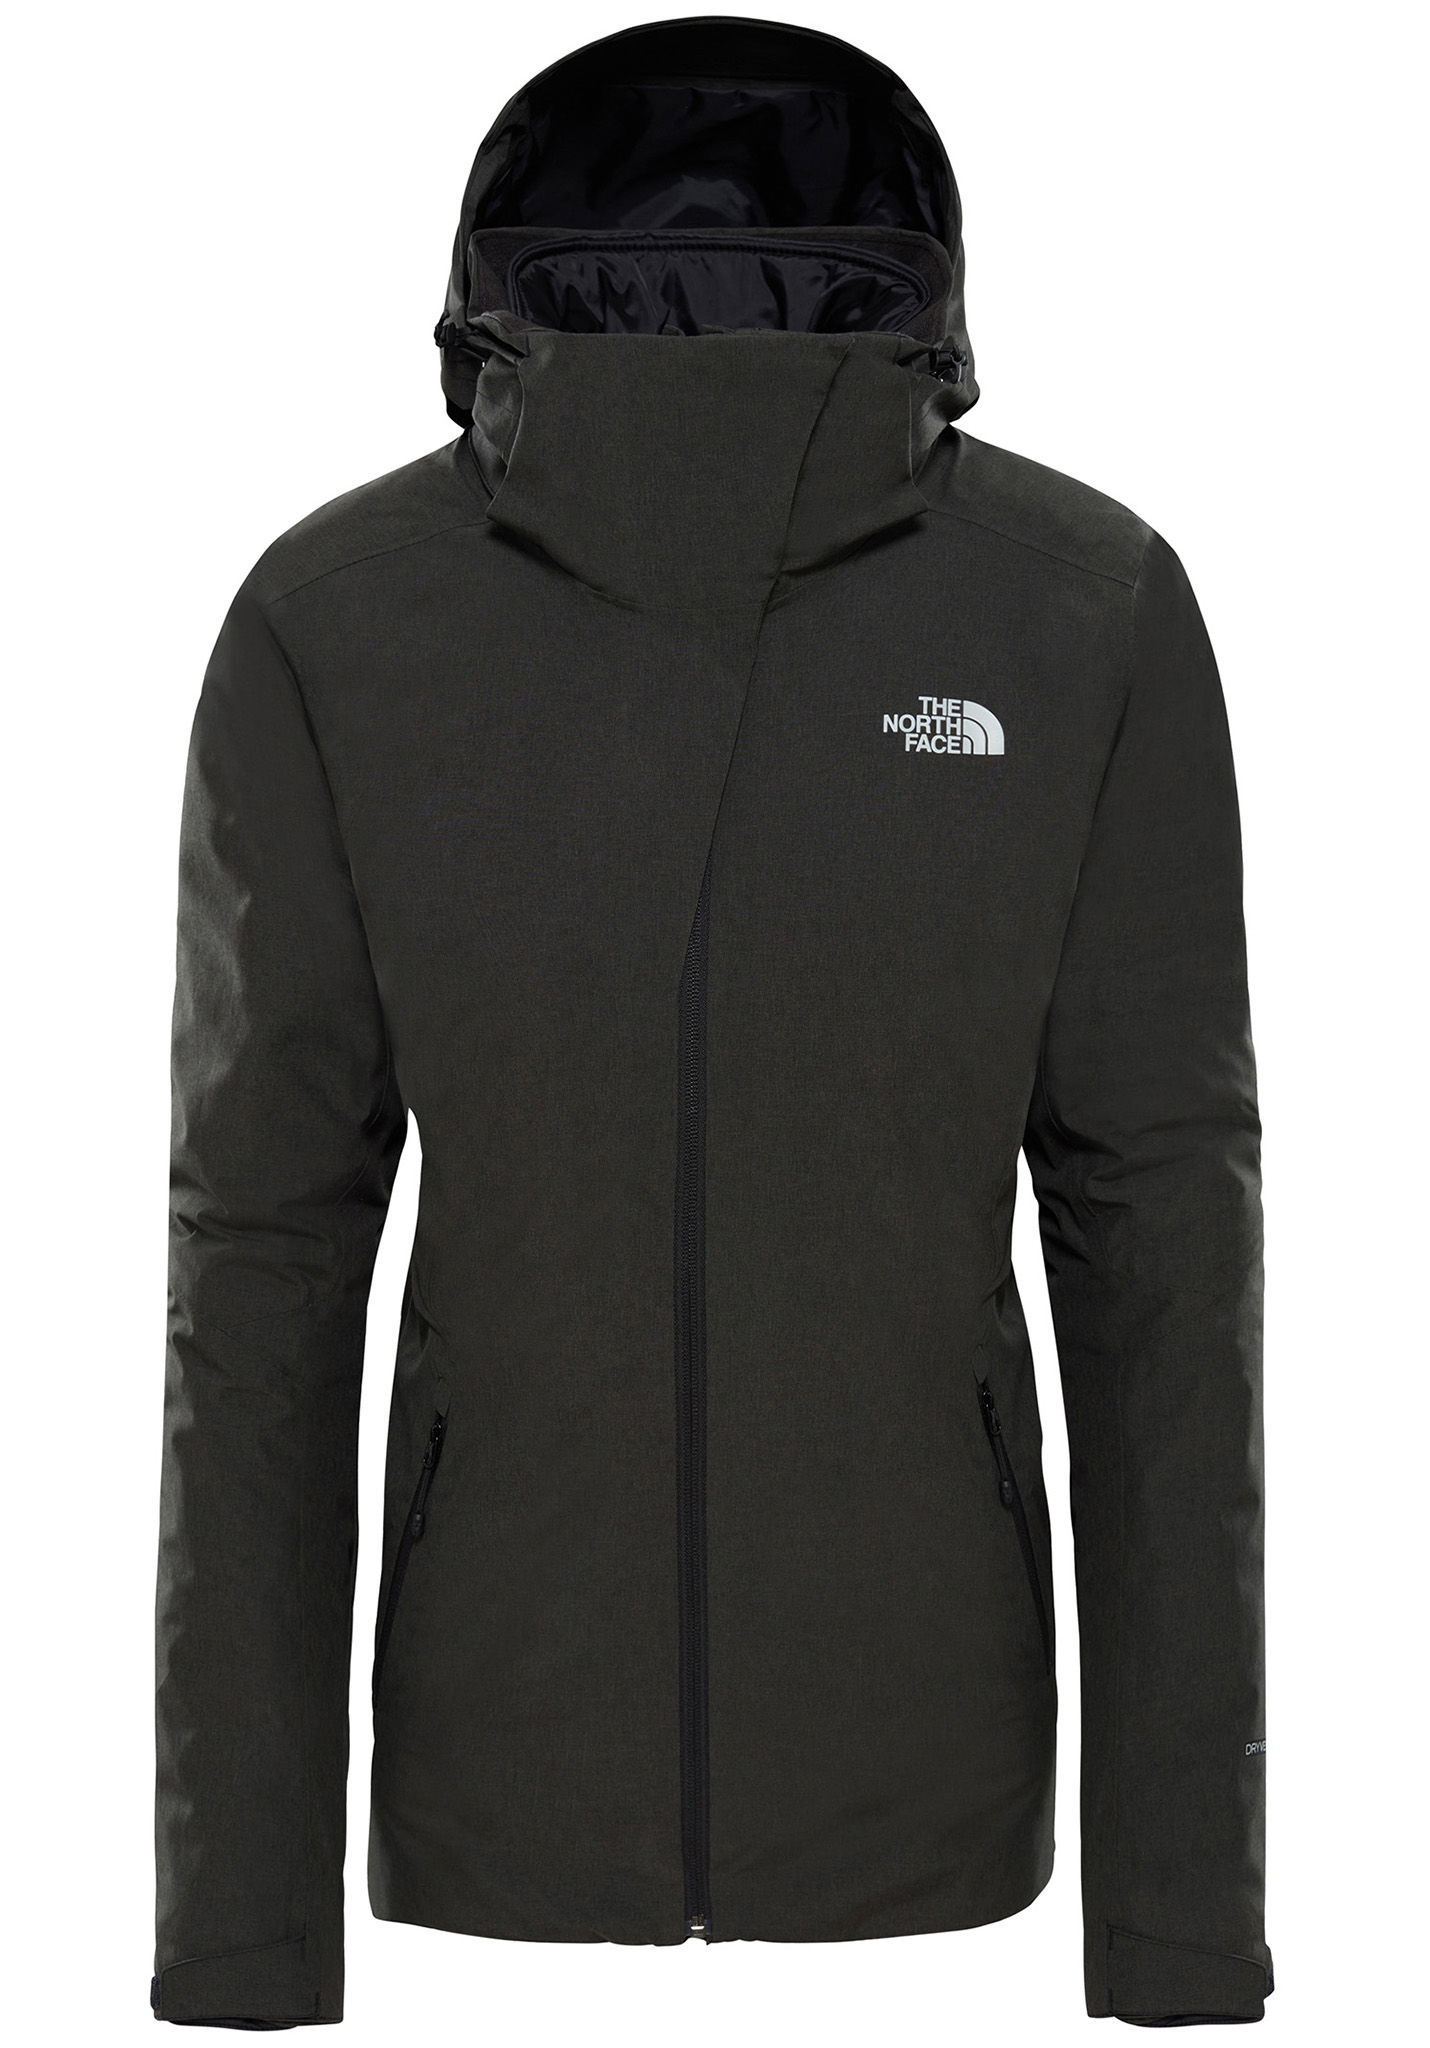 official photos c79c7 47838 THE NORTH FACE Inlux Triclimate - Jacke für Damen - Schwarz